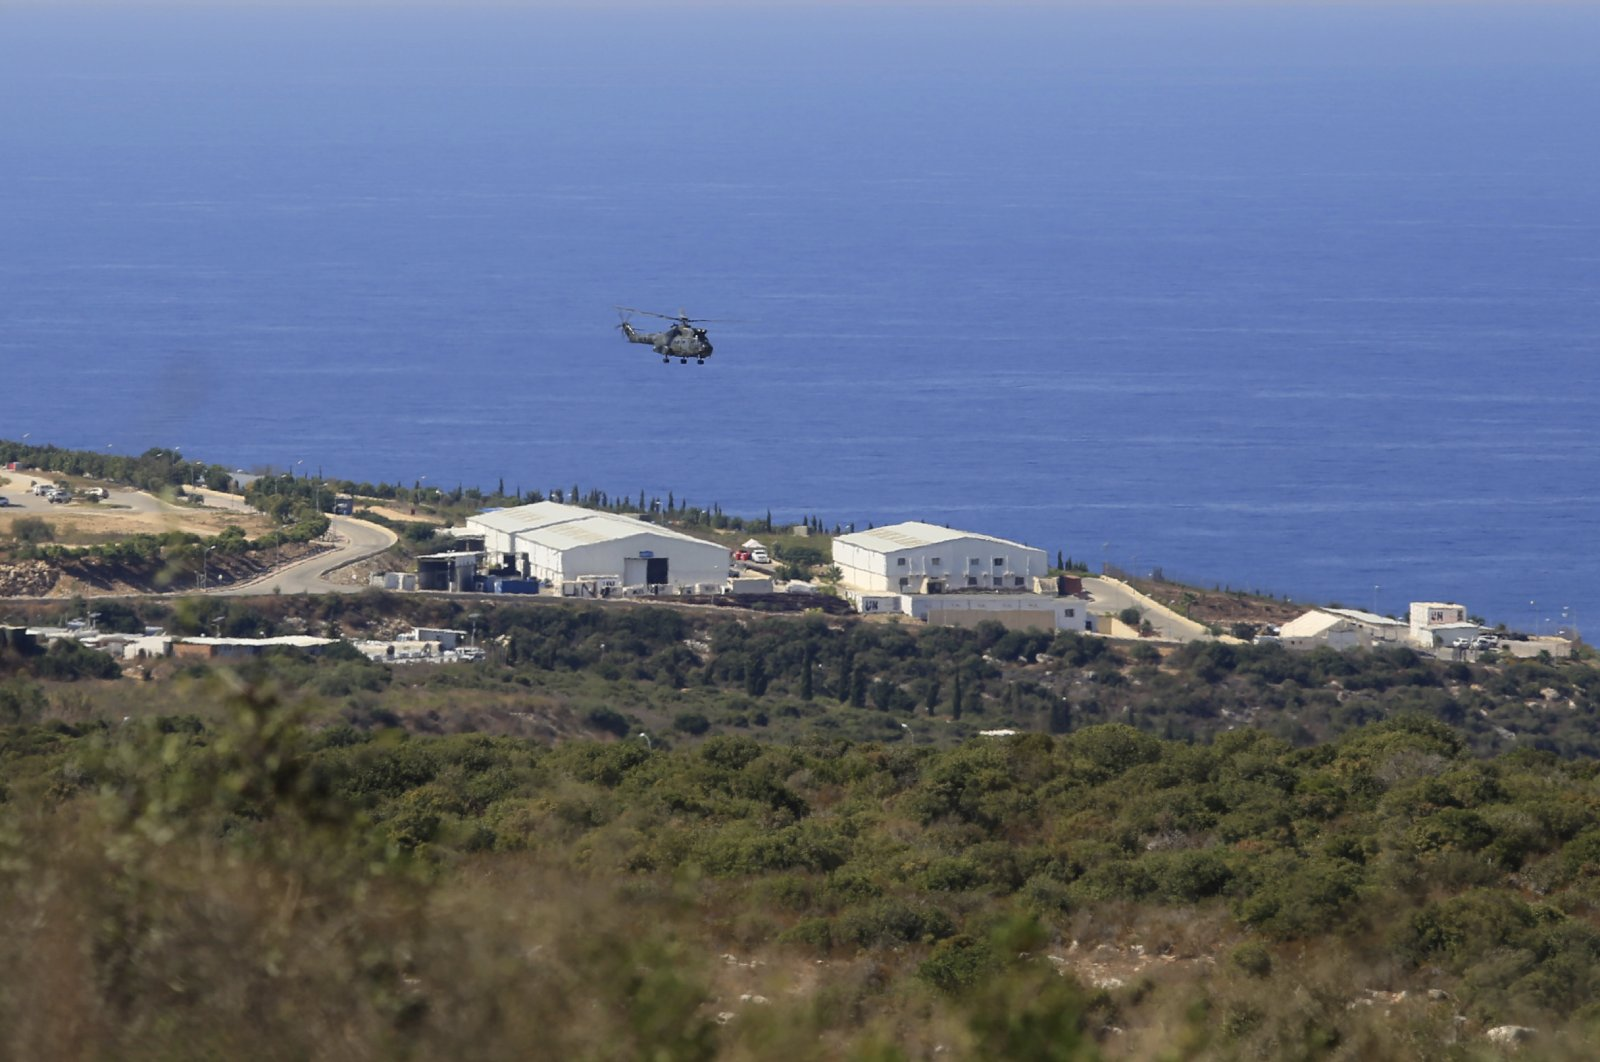 A helicopter flies over a base of the U.N. peacekeeping force, where U.S.-mediated talks were held over a disputed maritime border between Israel and Lebanon, in the southern town of Naqoura, Lebanon, Oct. 14, 2020. (AP Photo)